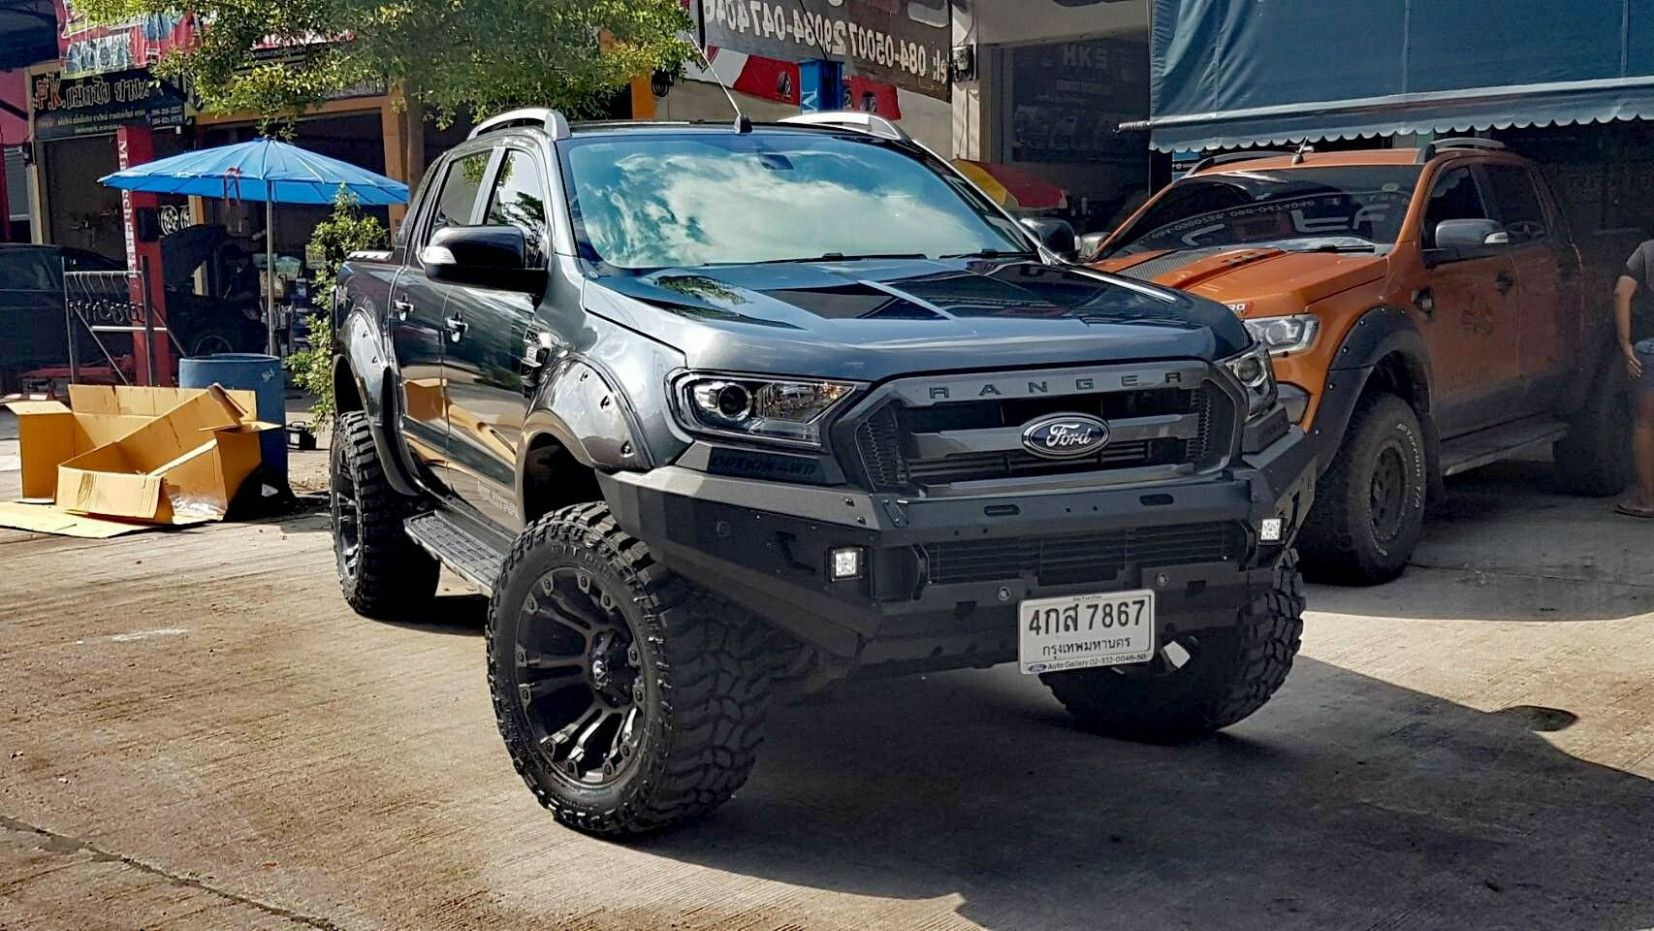 2018 Ford Ranger Wildtrak Tuning Offroad 3 Ford In 2020 Ford Ranger Wildtrak Ford Ranger Ford Ranger Truck